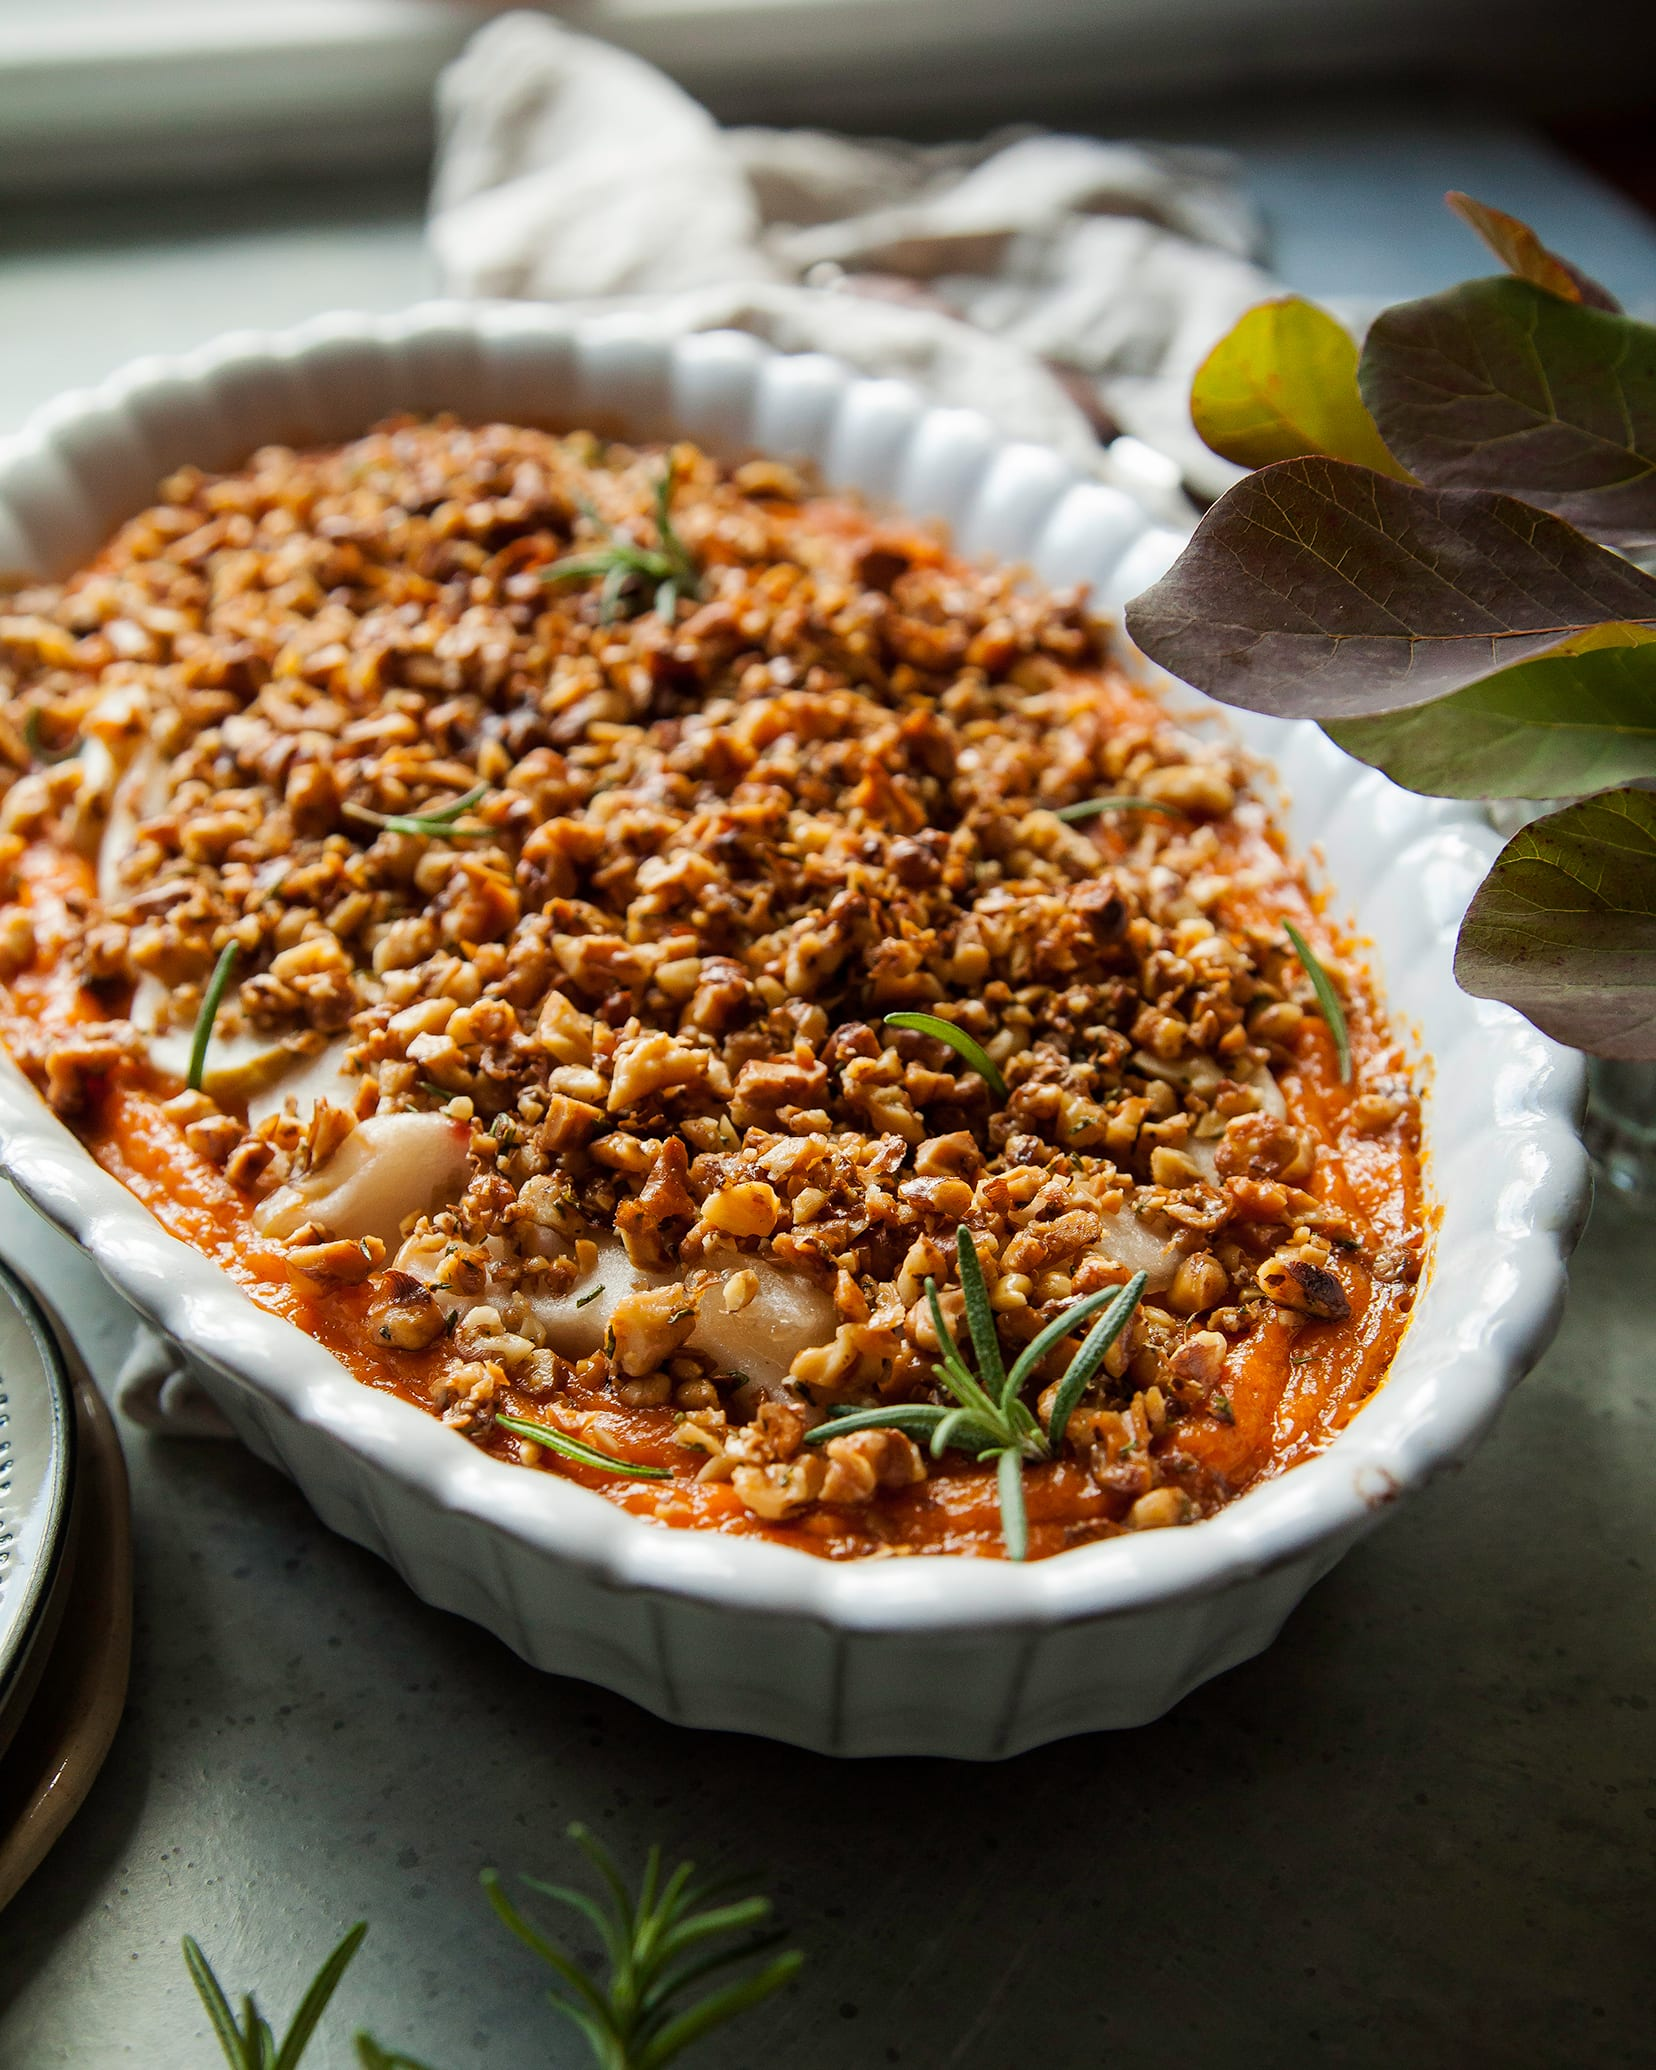 Vegan sweet potato casserole with apples and crunchy rosemary walnuts